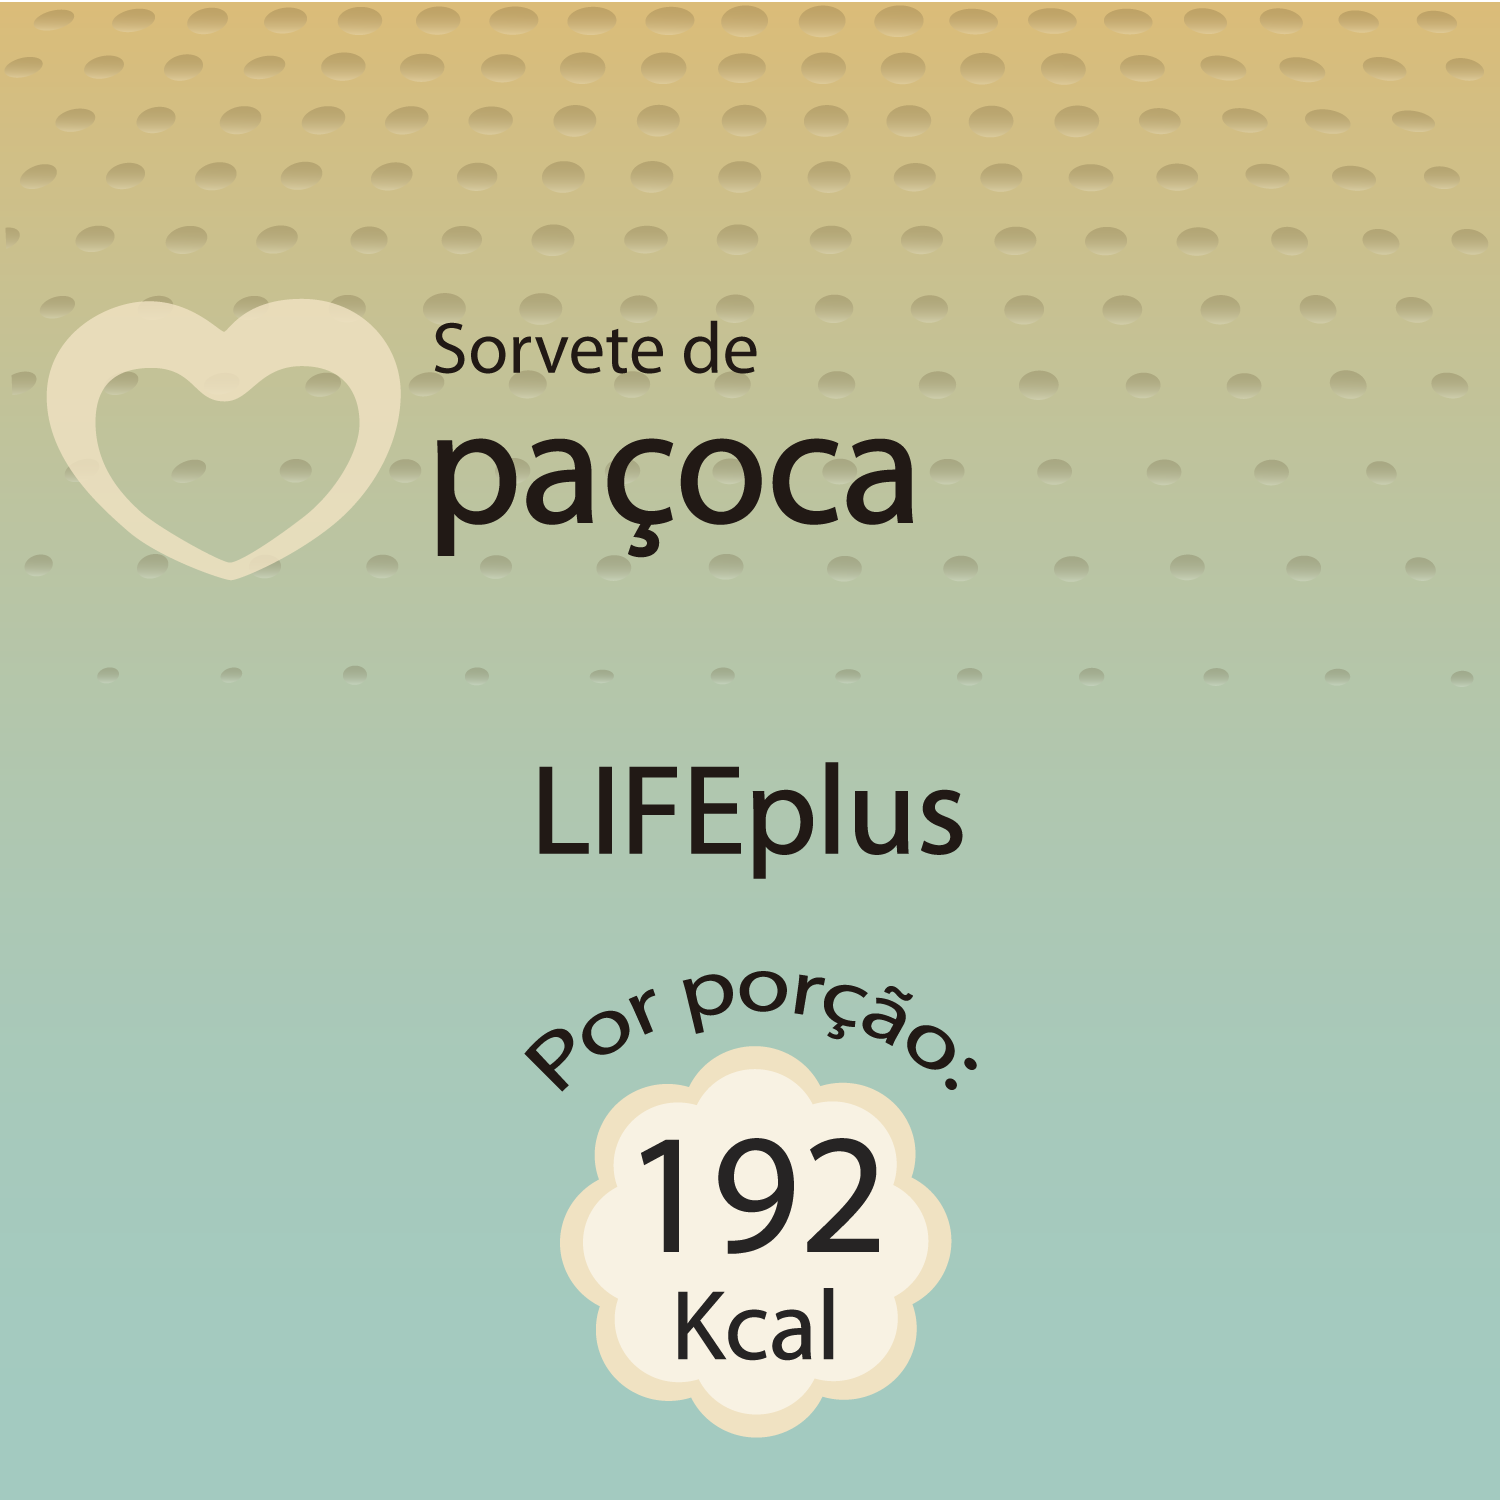 120ml paçoca lifeplus